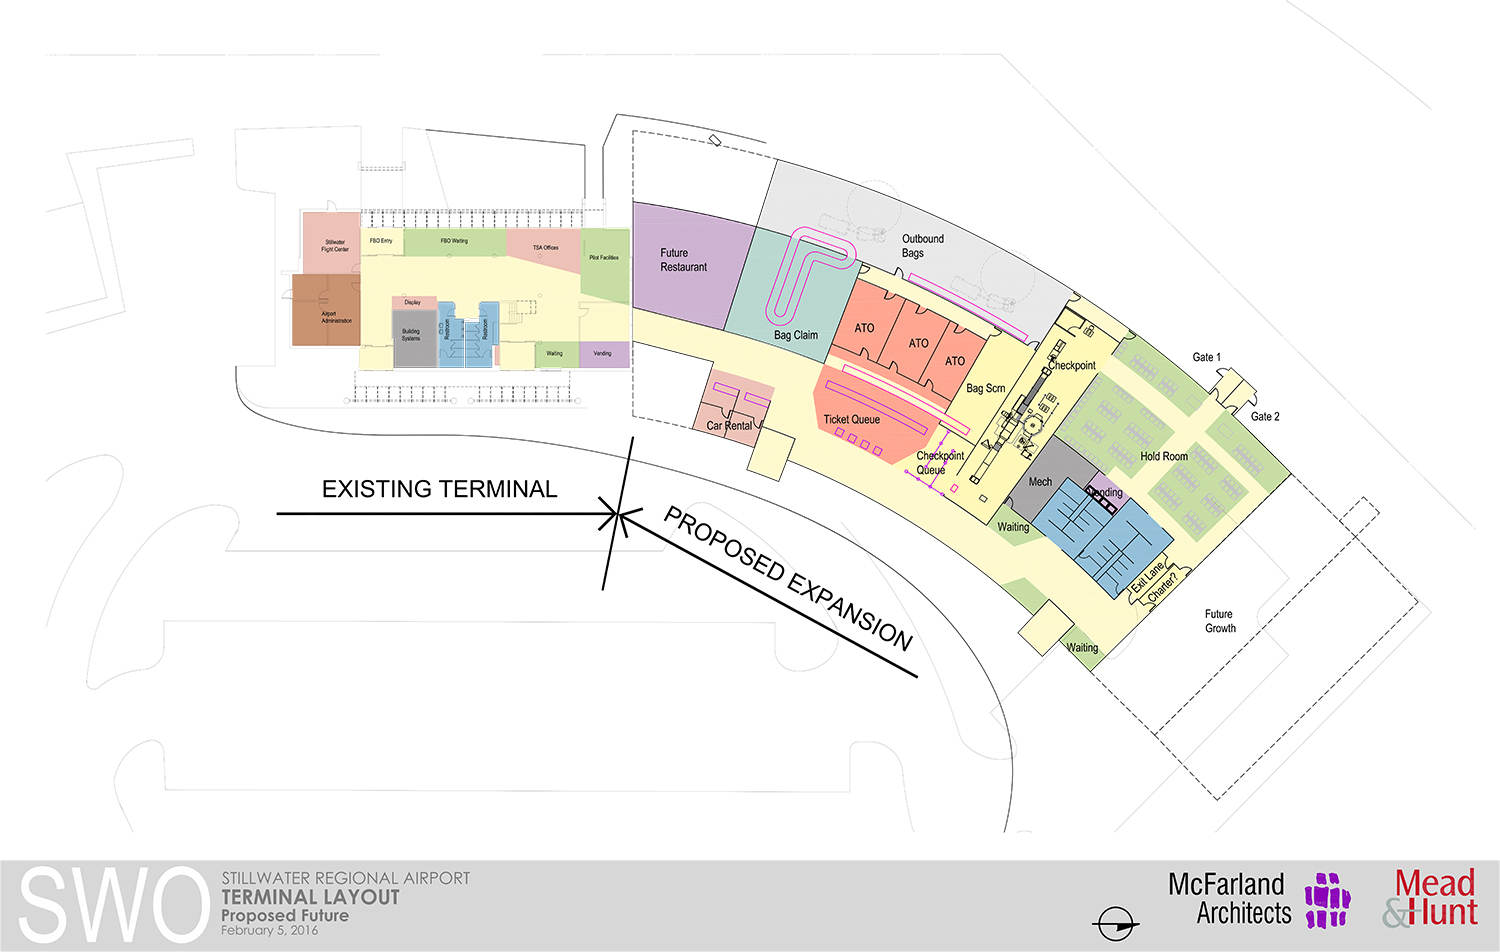 future expansion of Stillwater Regional Airport's terminal